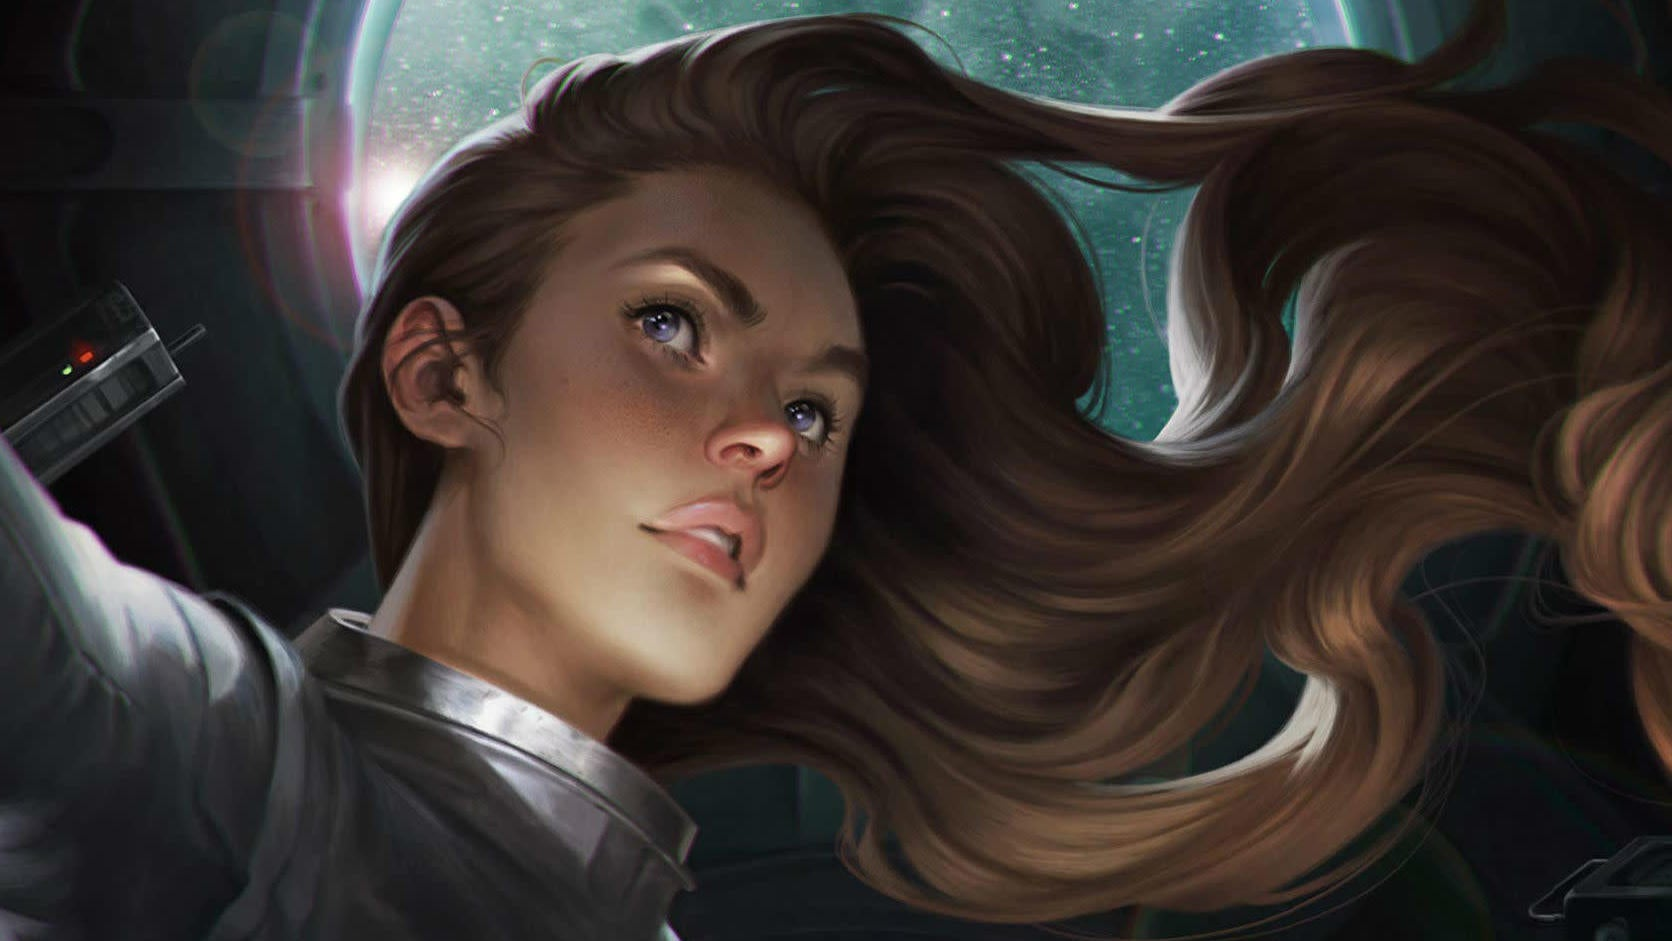 A Gifted Pilot Faces Alien Drones And Sassy AI In This Excerpt From Brandon Sanderson's Skyward Sequel, Starsight